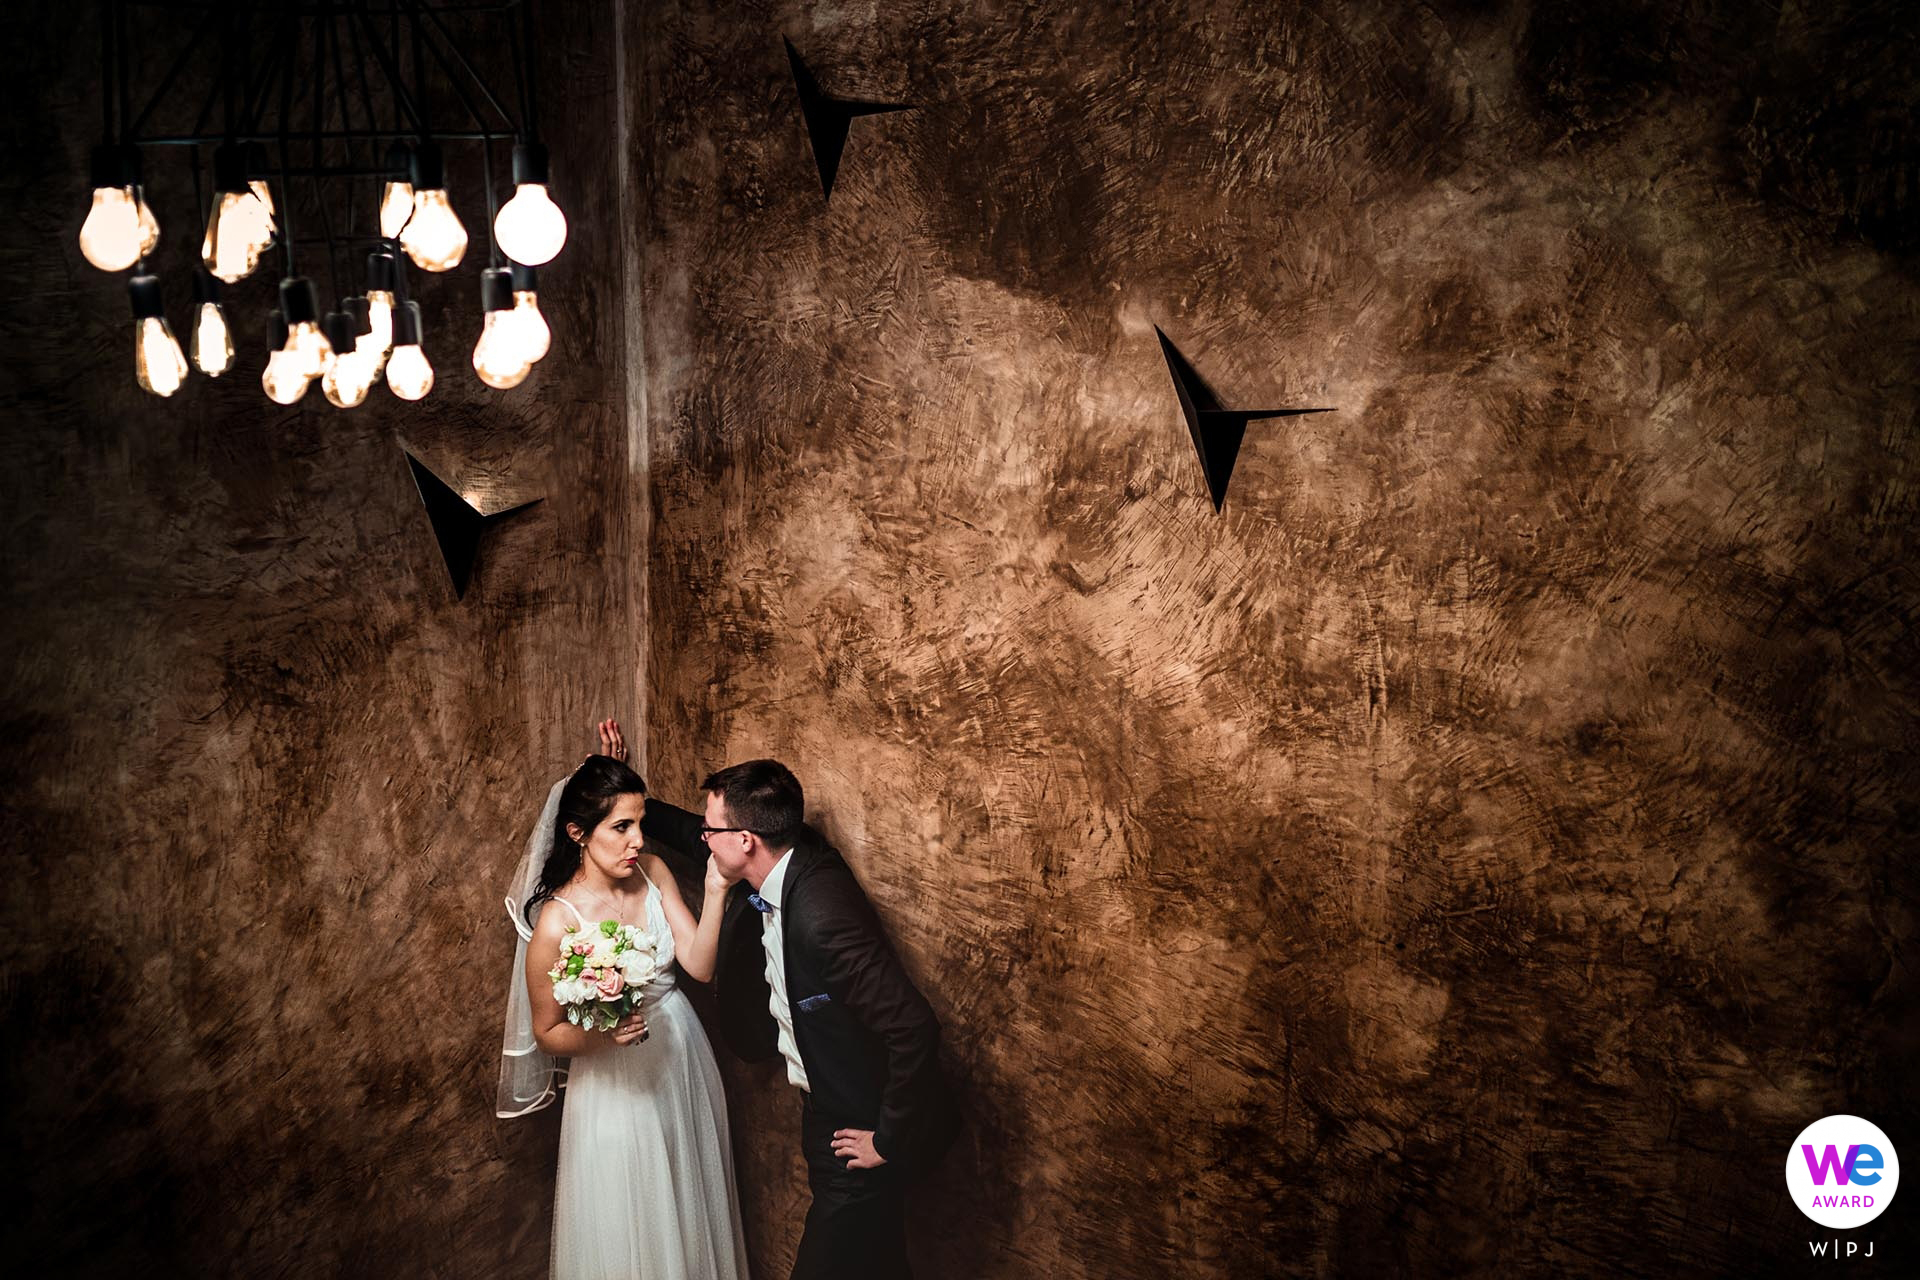 Club Horizont, Varna, Bulgaria Elopement Portrait Session | The bride and groom share some private time together before leaving to celebrate with their guests